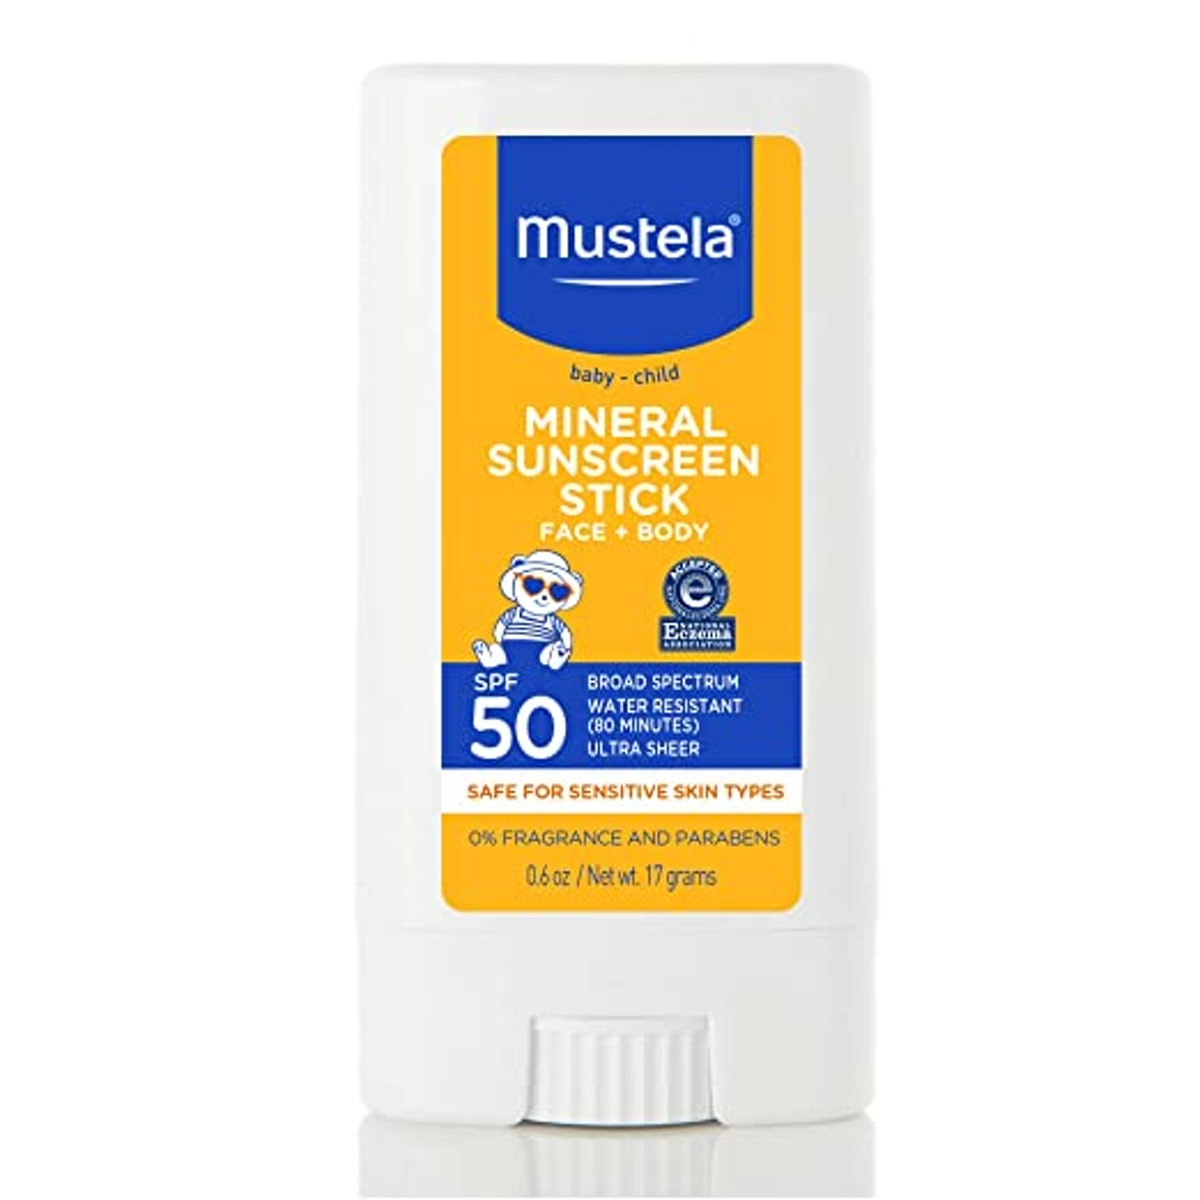 Mustela Baby Mineral Sunscreen Stick